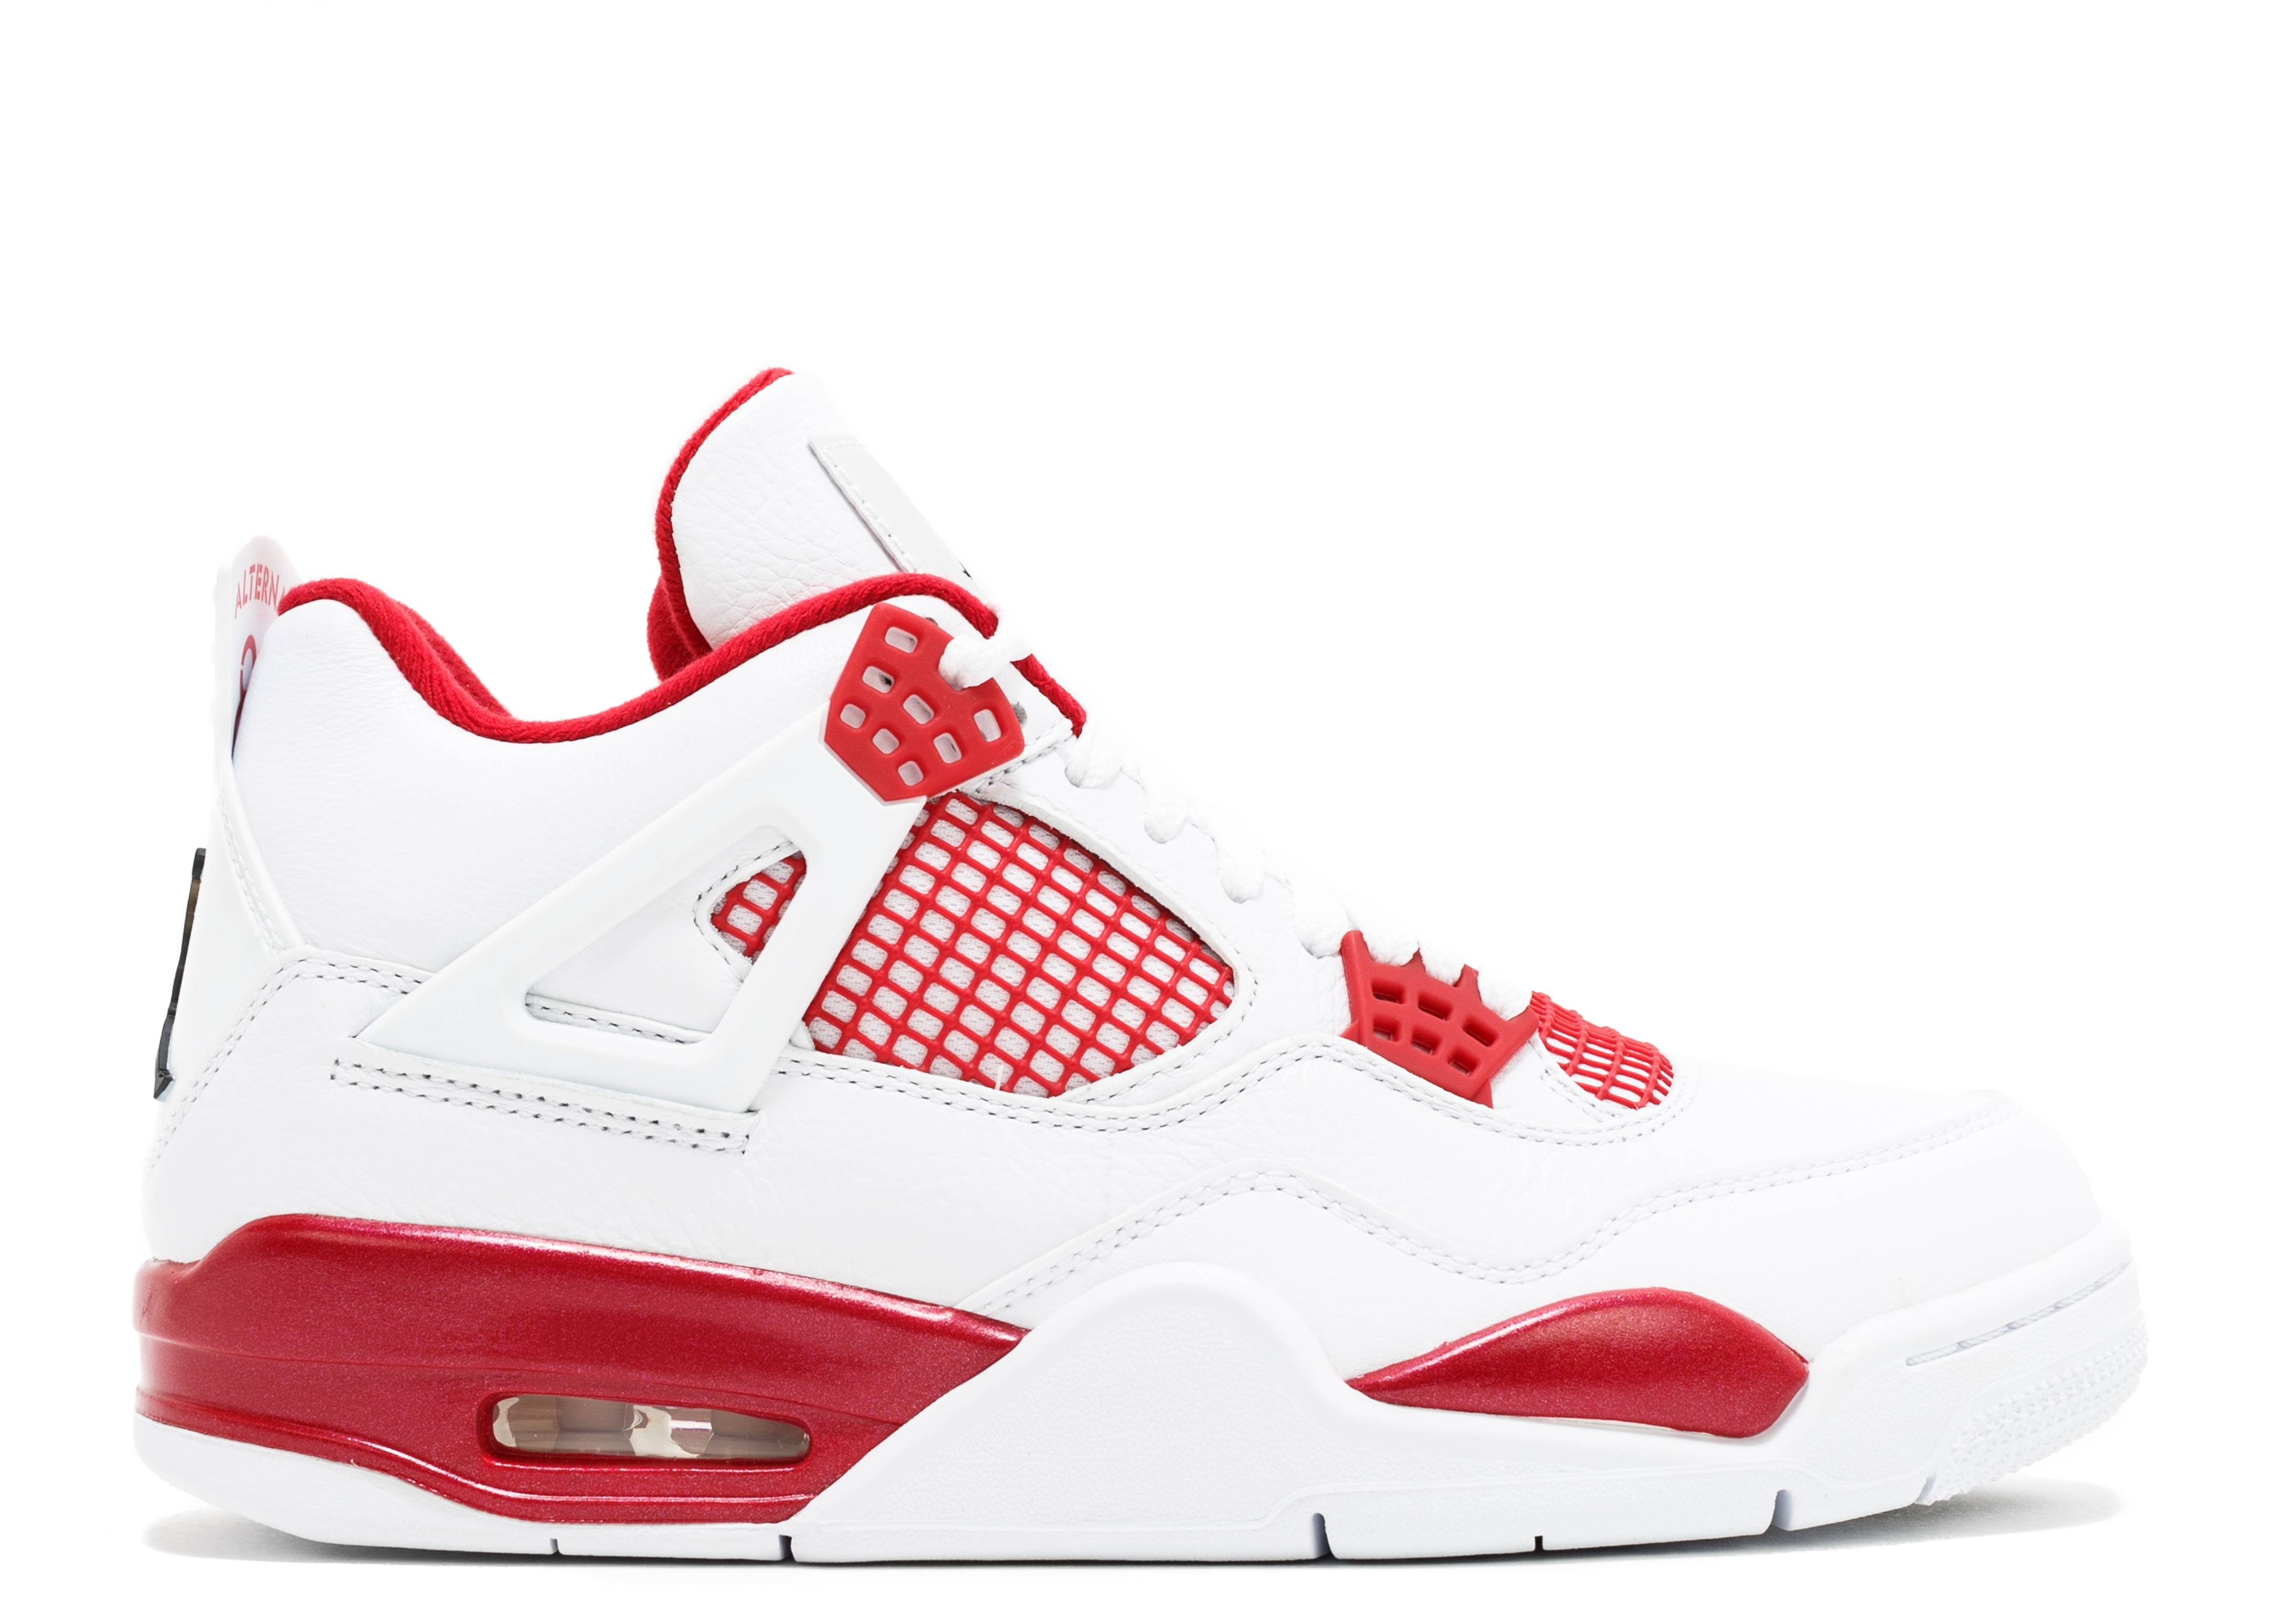 check out 2a2f9 ae922 air jordan 4 retro